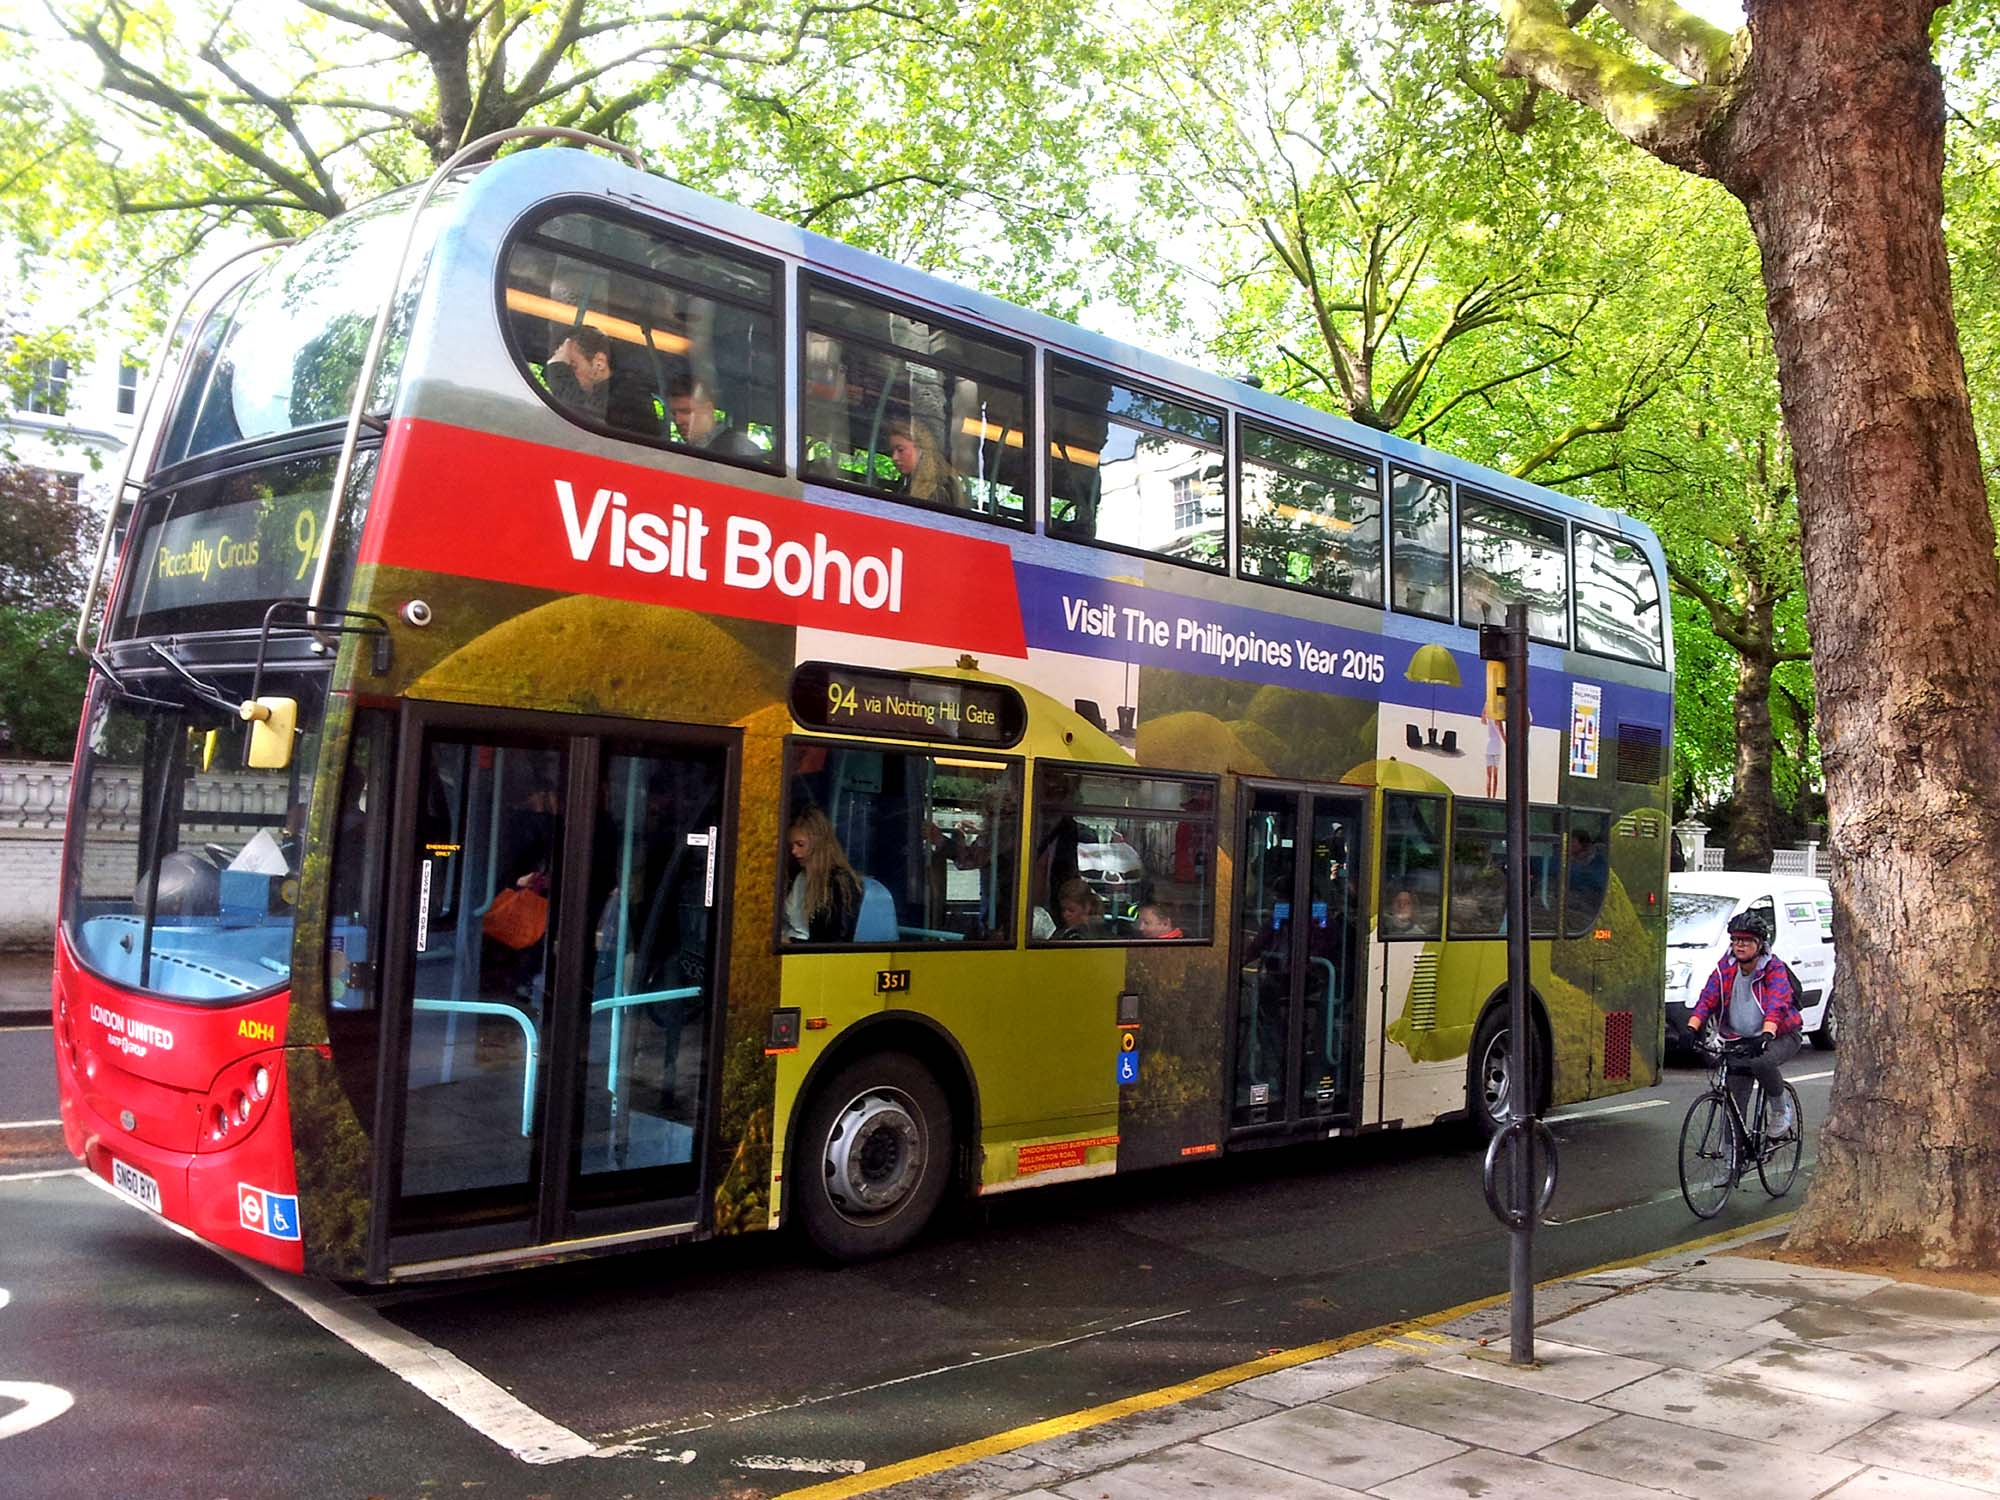 Visit Bohol Red London Double Decker Bus